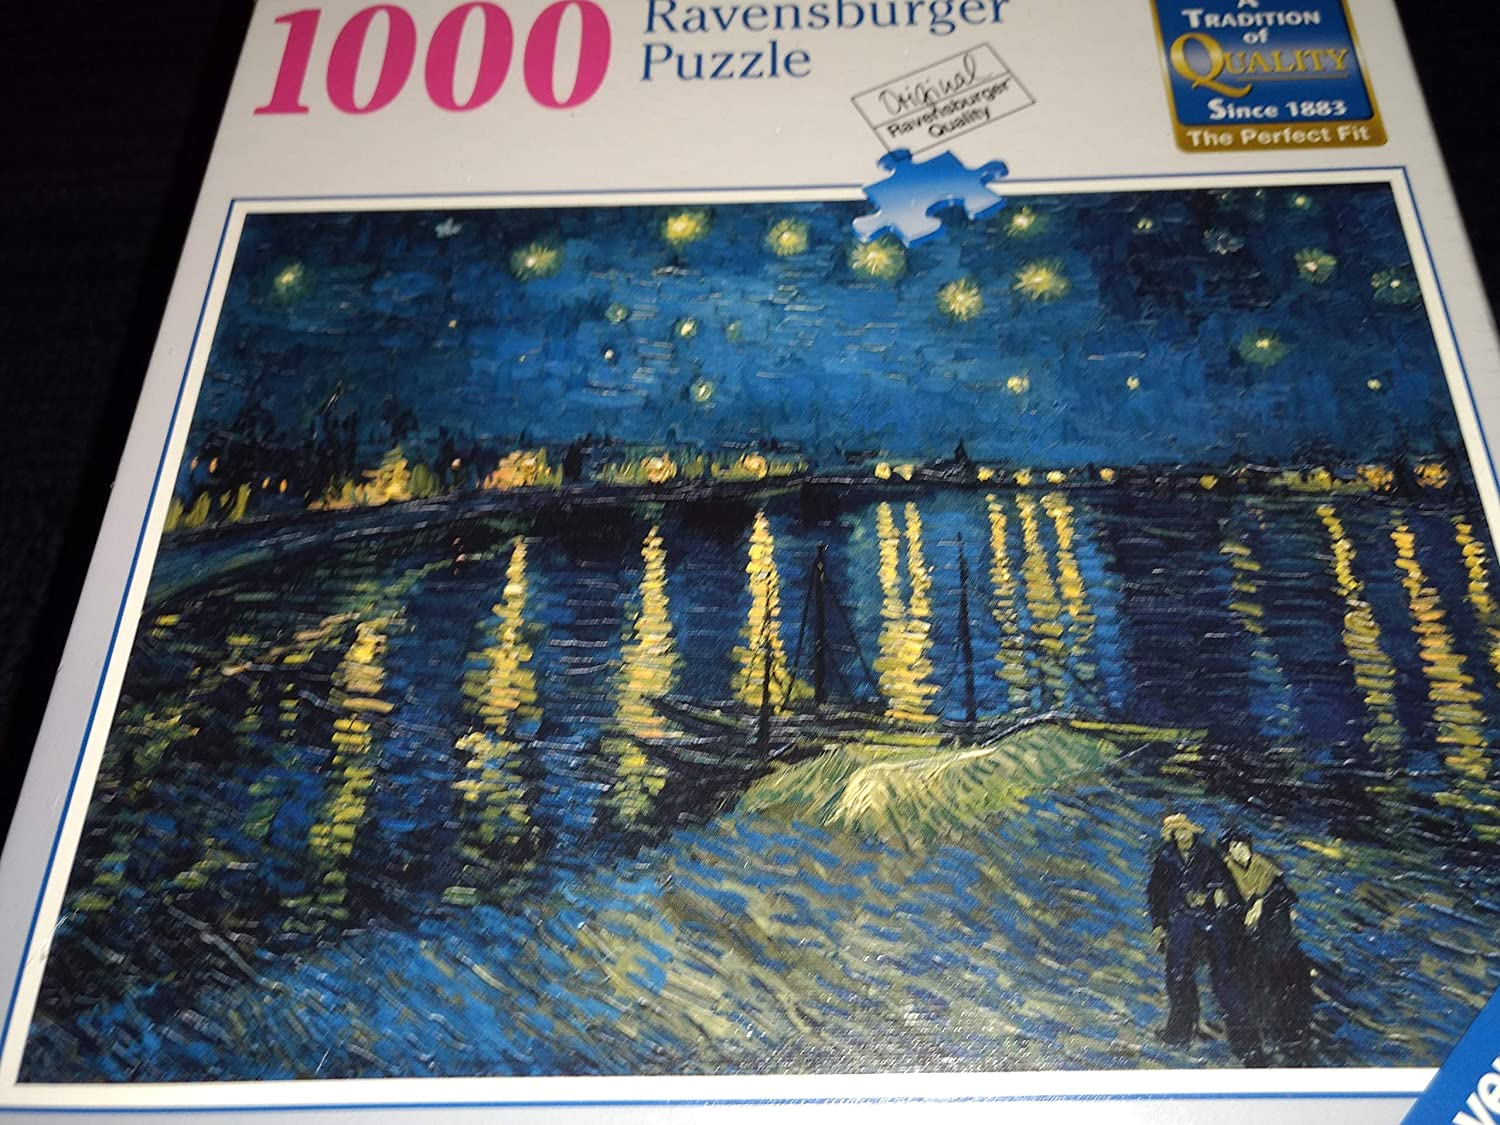 1000 Piece Puzzle Jigsaw Puzzle Life Van Gogh Starry Night Over the Rhone